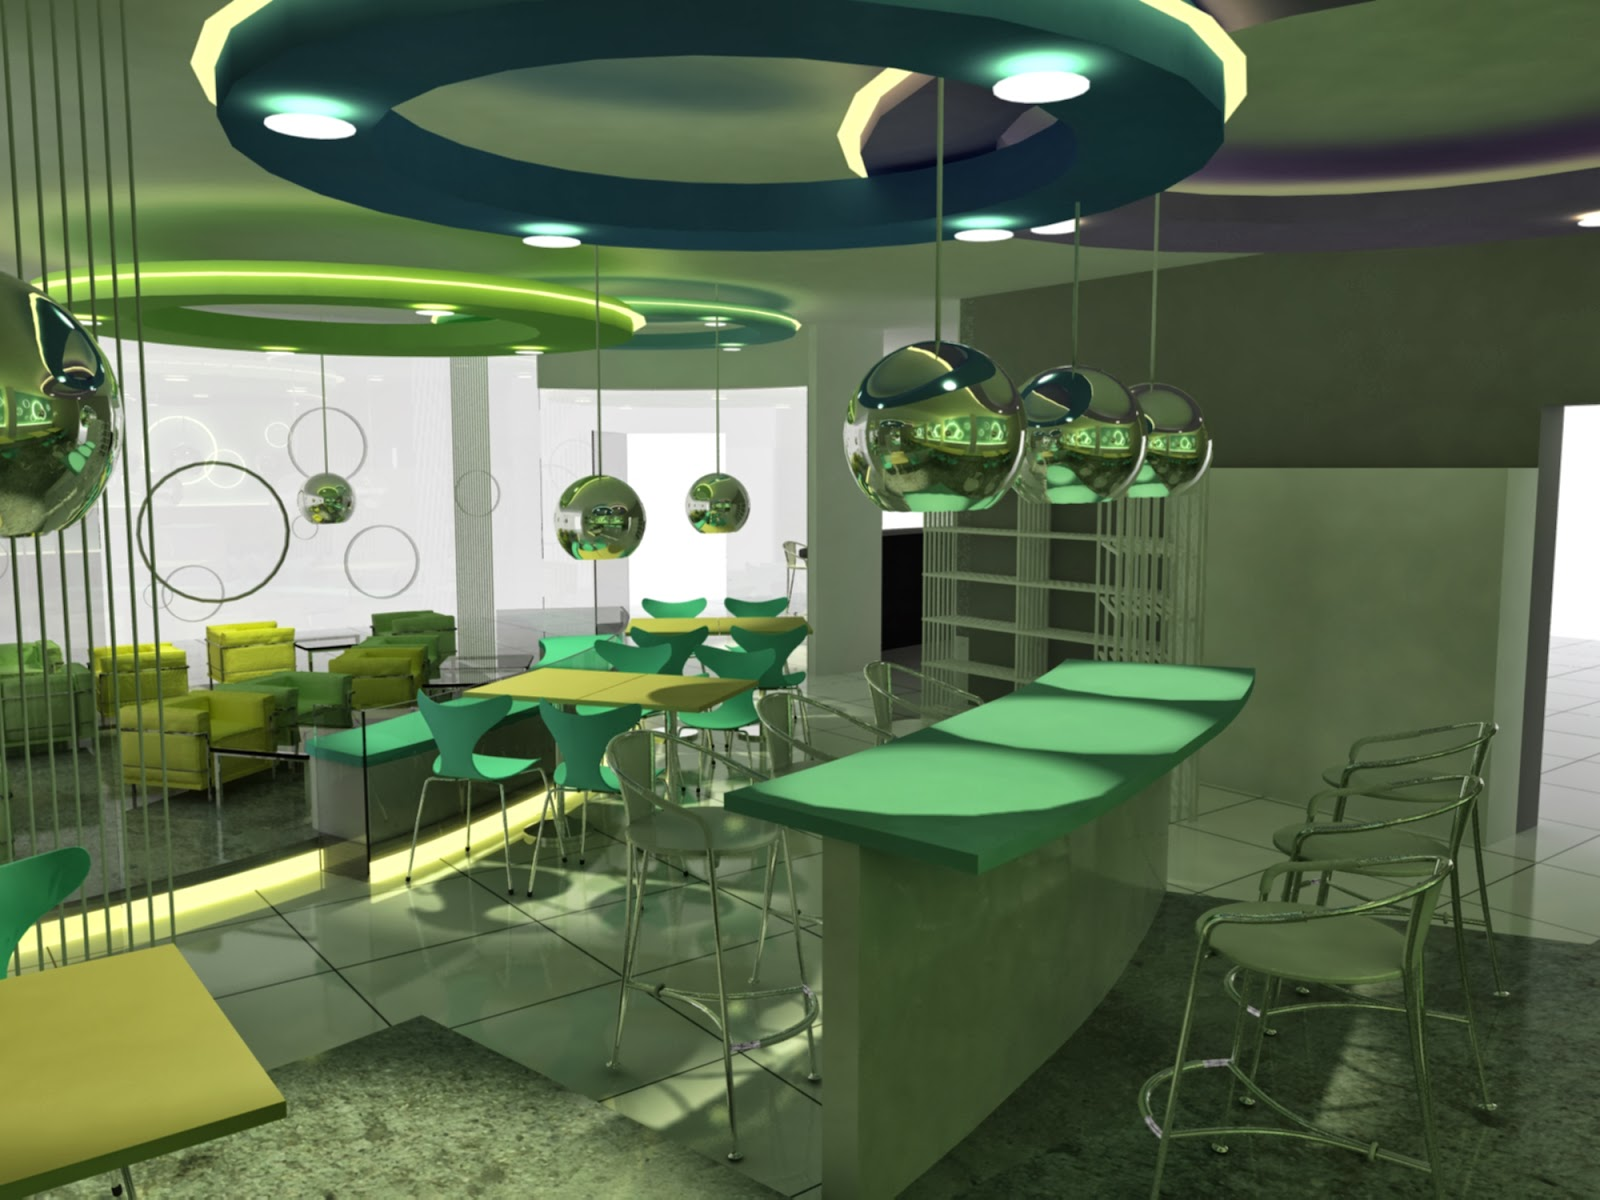 Interior design spgg cafe design proposal concept under for Interior design concept